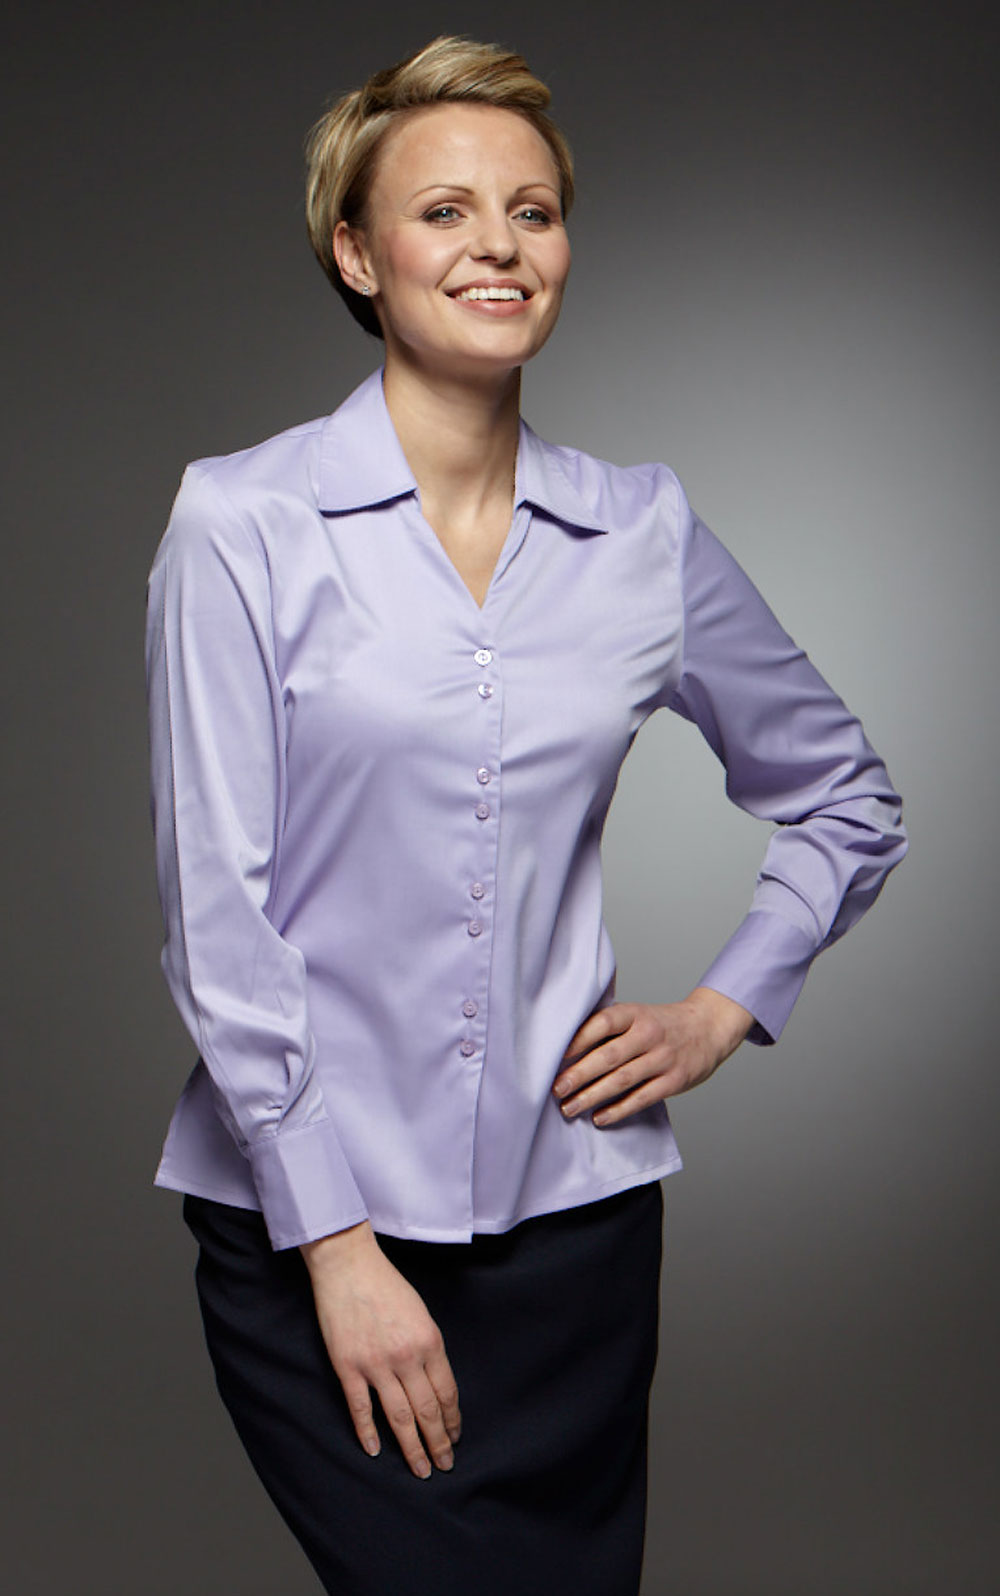 Find great deals on eBay for Work Blouse in Tops and Blouses for All Women. Shop with confidence.